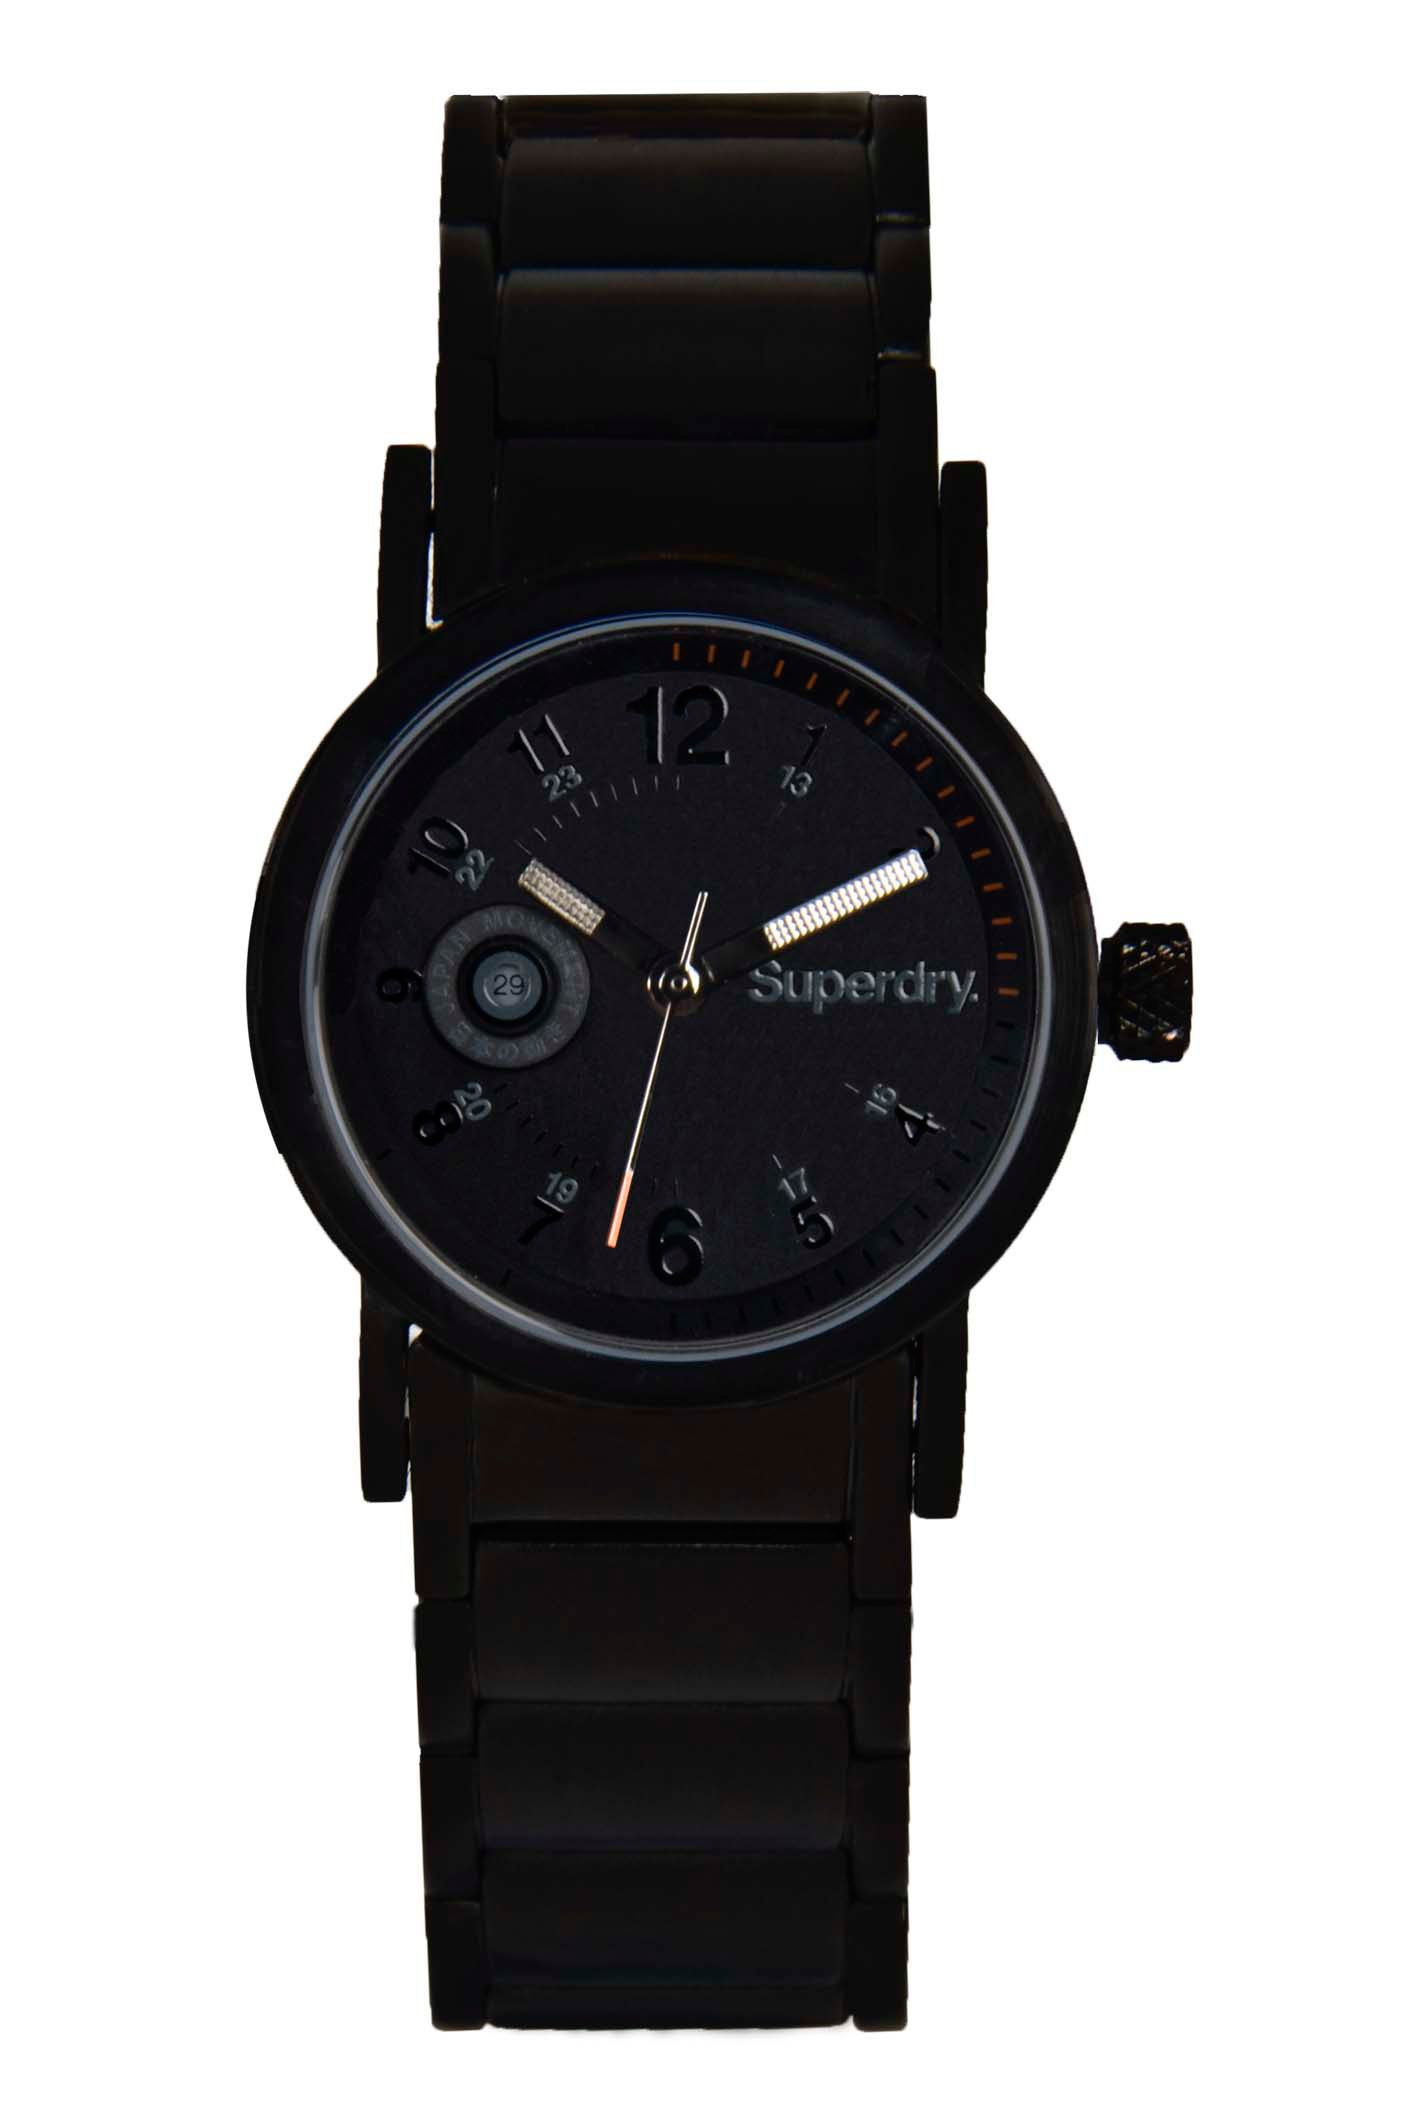 Superdry Super japan ladies watch product image